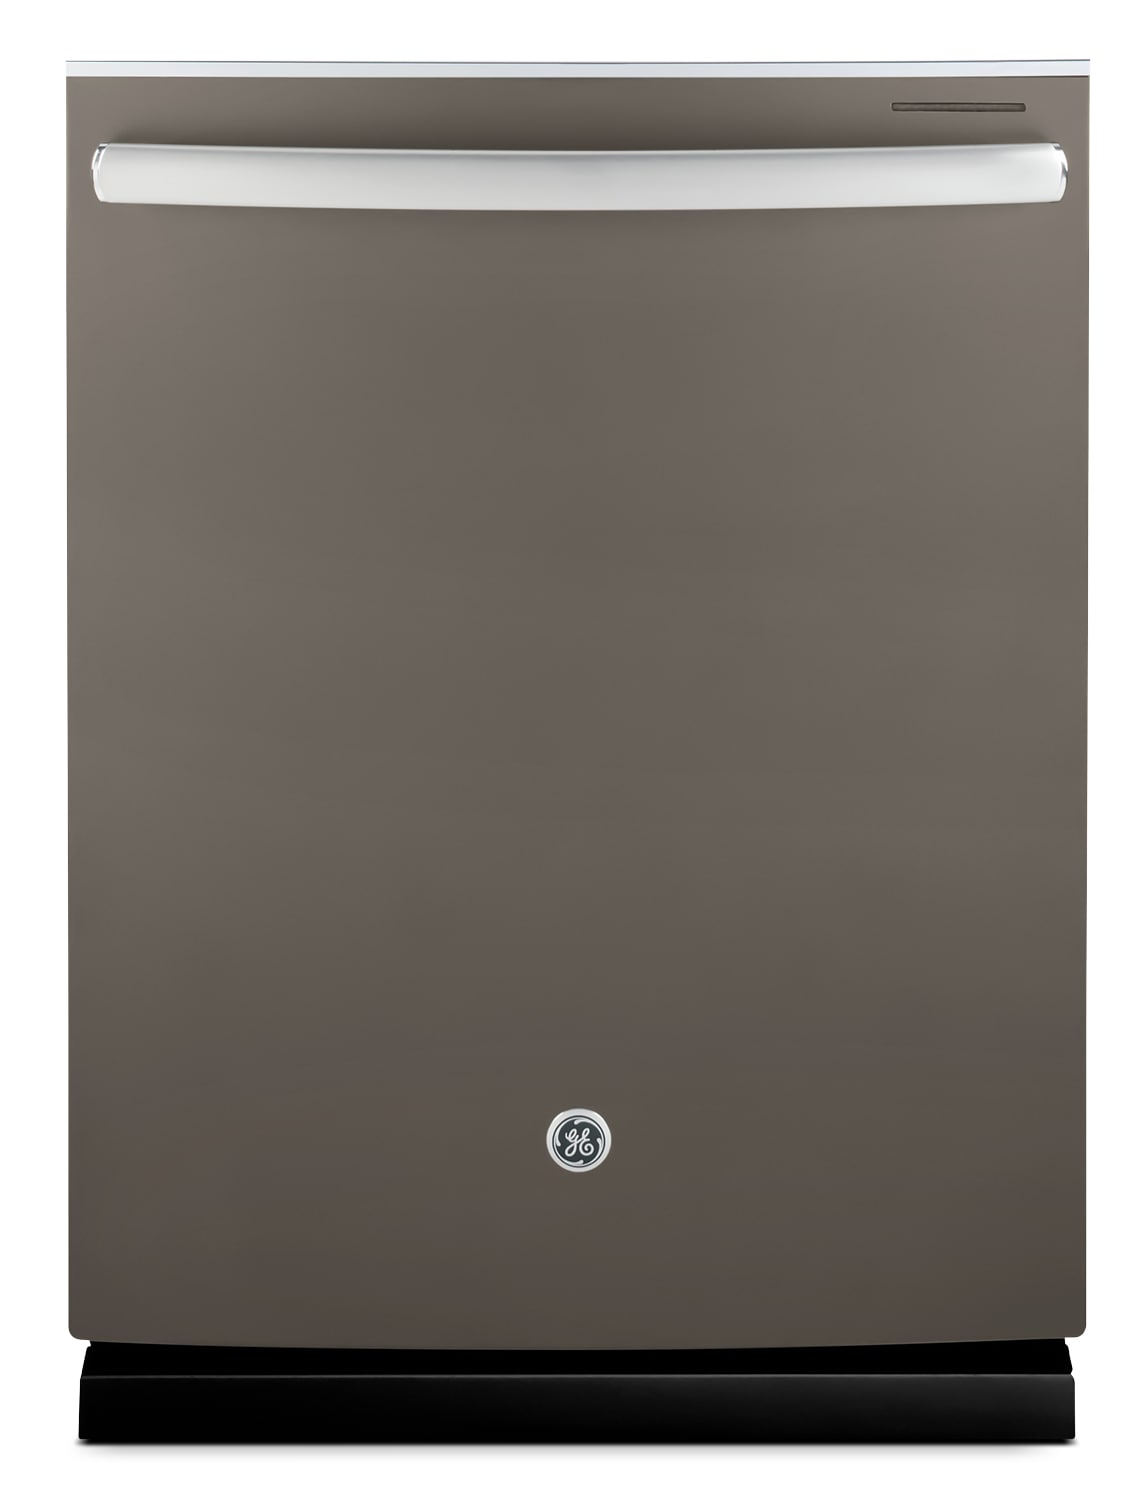 GE Tall Tub Built-In Dishwasher – Slate